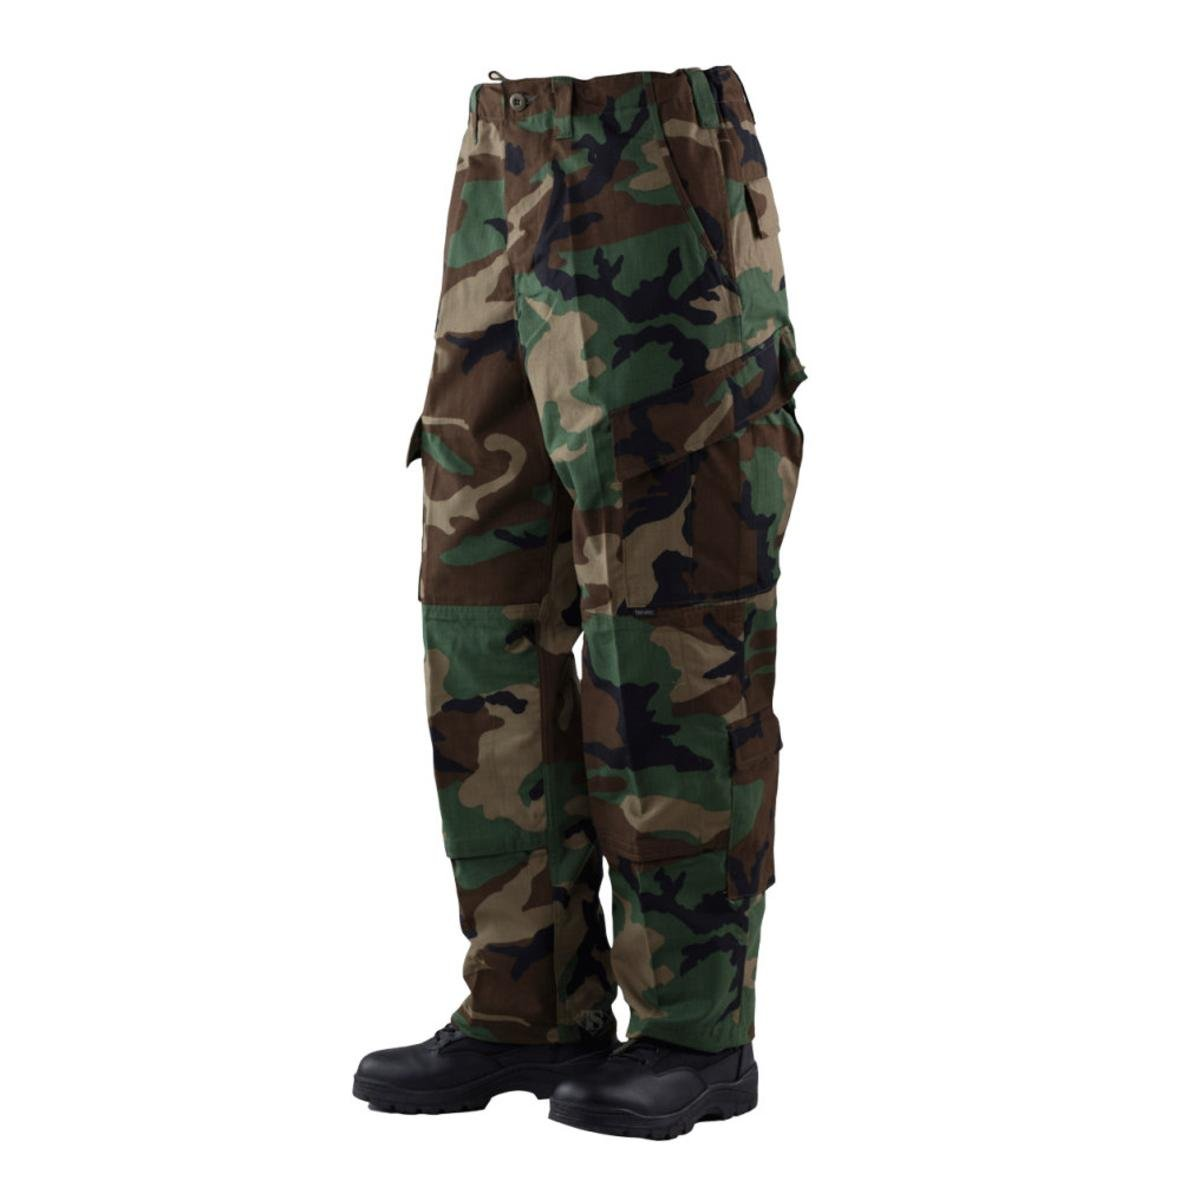 TRU-SPEC Tactical Response Pant Atlanco 073874 TSP-1299045-$P